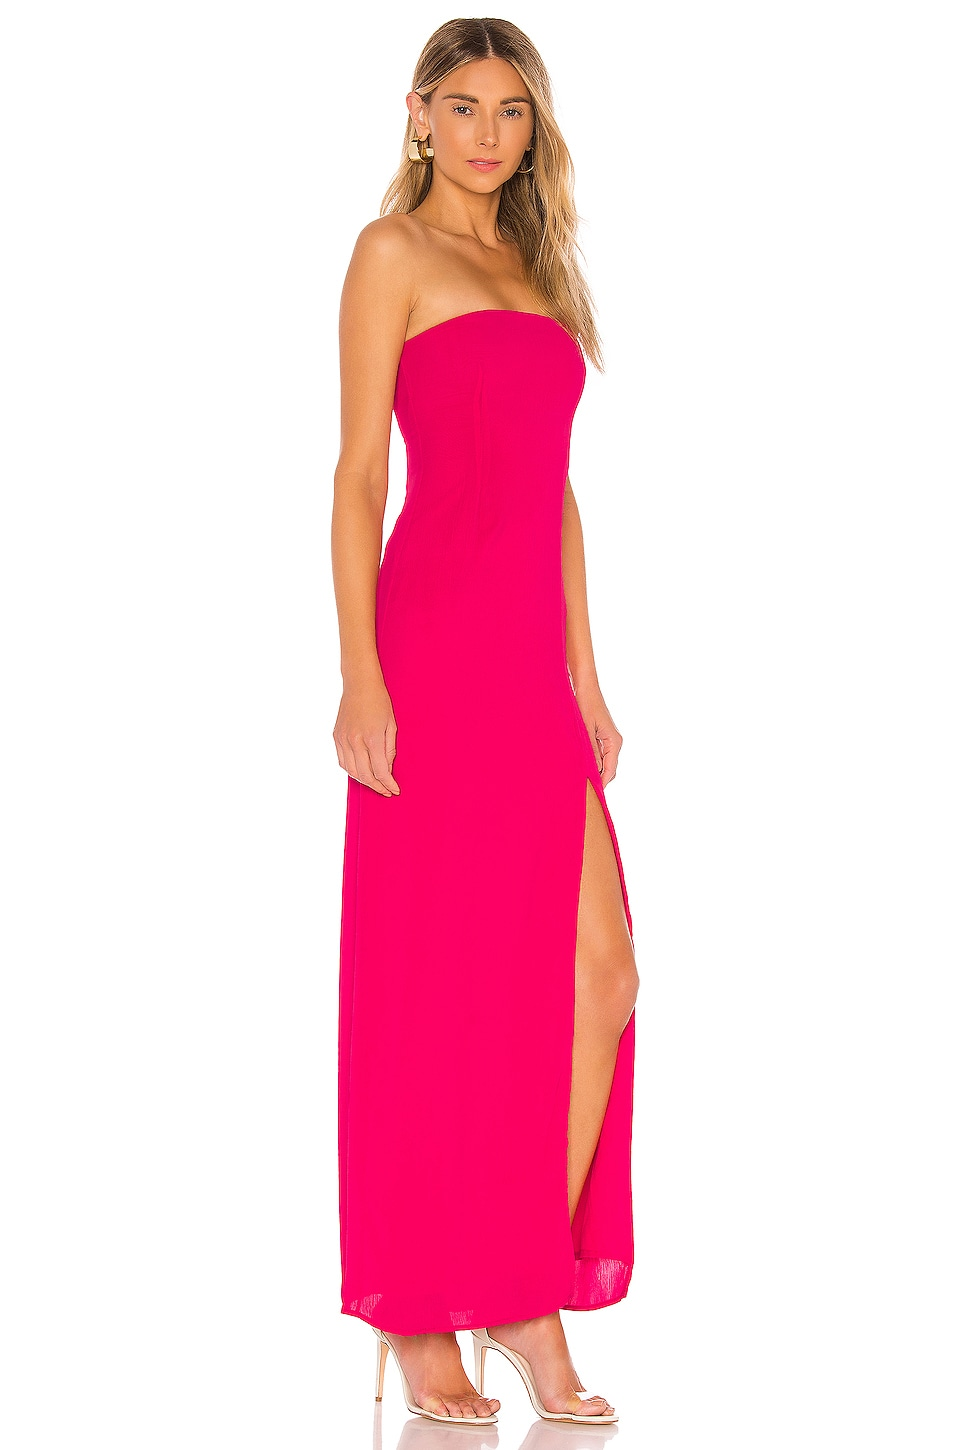 Asher Strapless Dress, view 2, click to view large image.